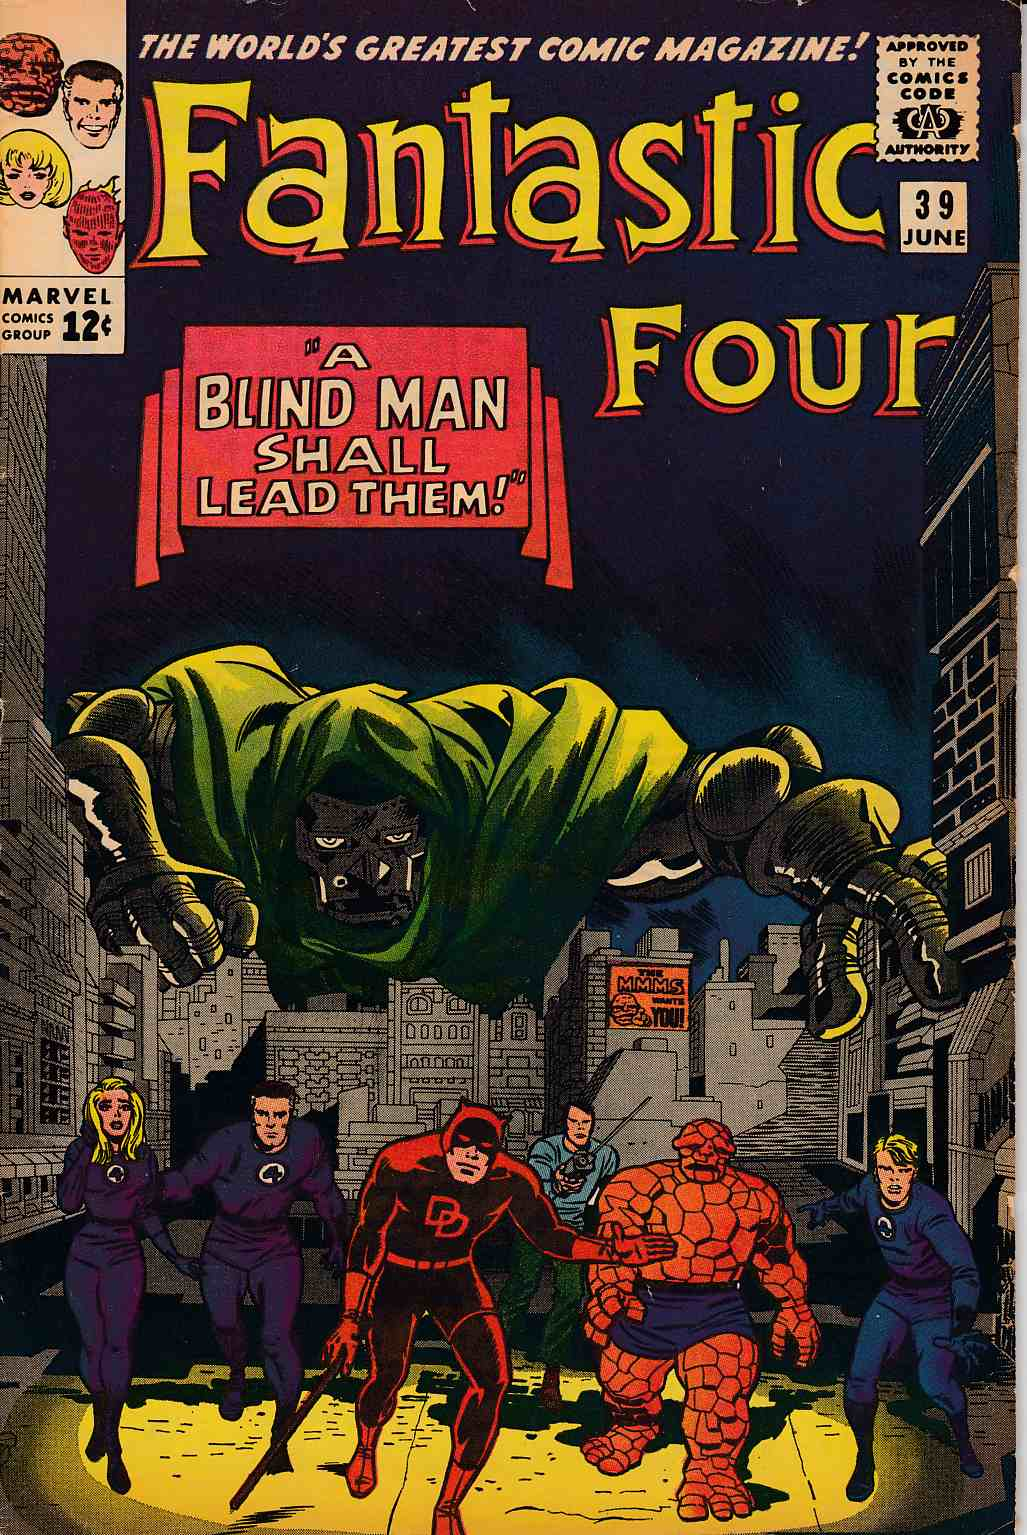 Fantastic Four #39 Very Good/Fine (5.0) [Marvel Comic]